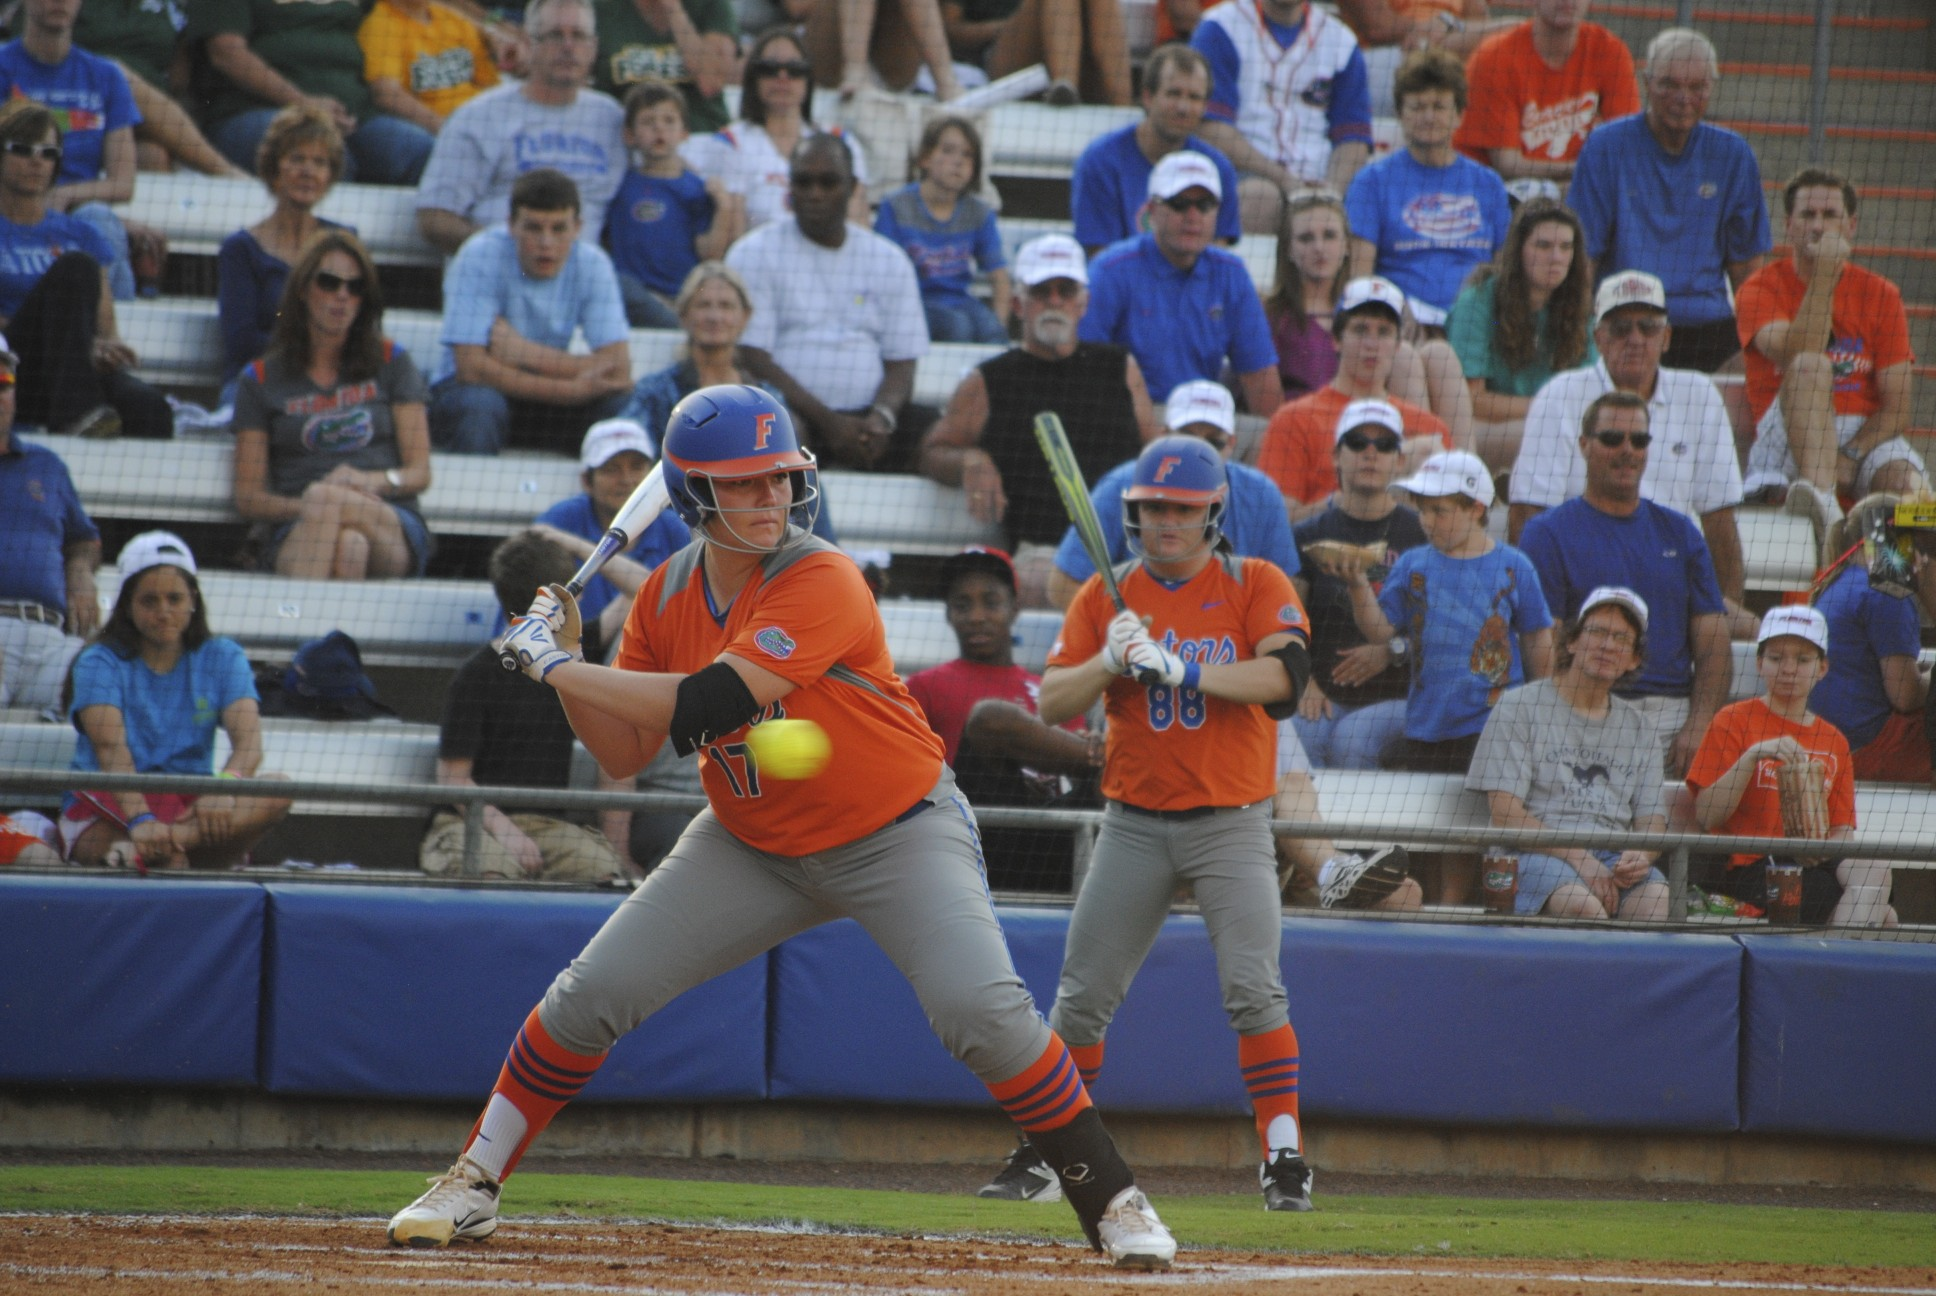 Pitcher Lauren Haegar's home run hit scored the only point for the Gators.